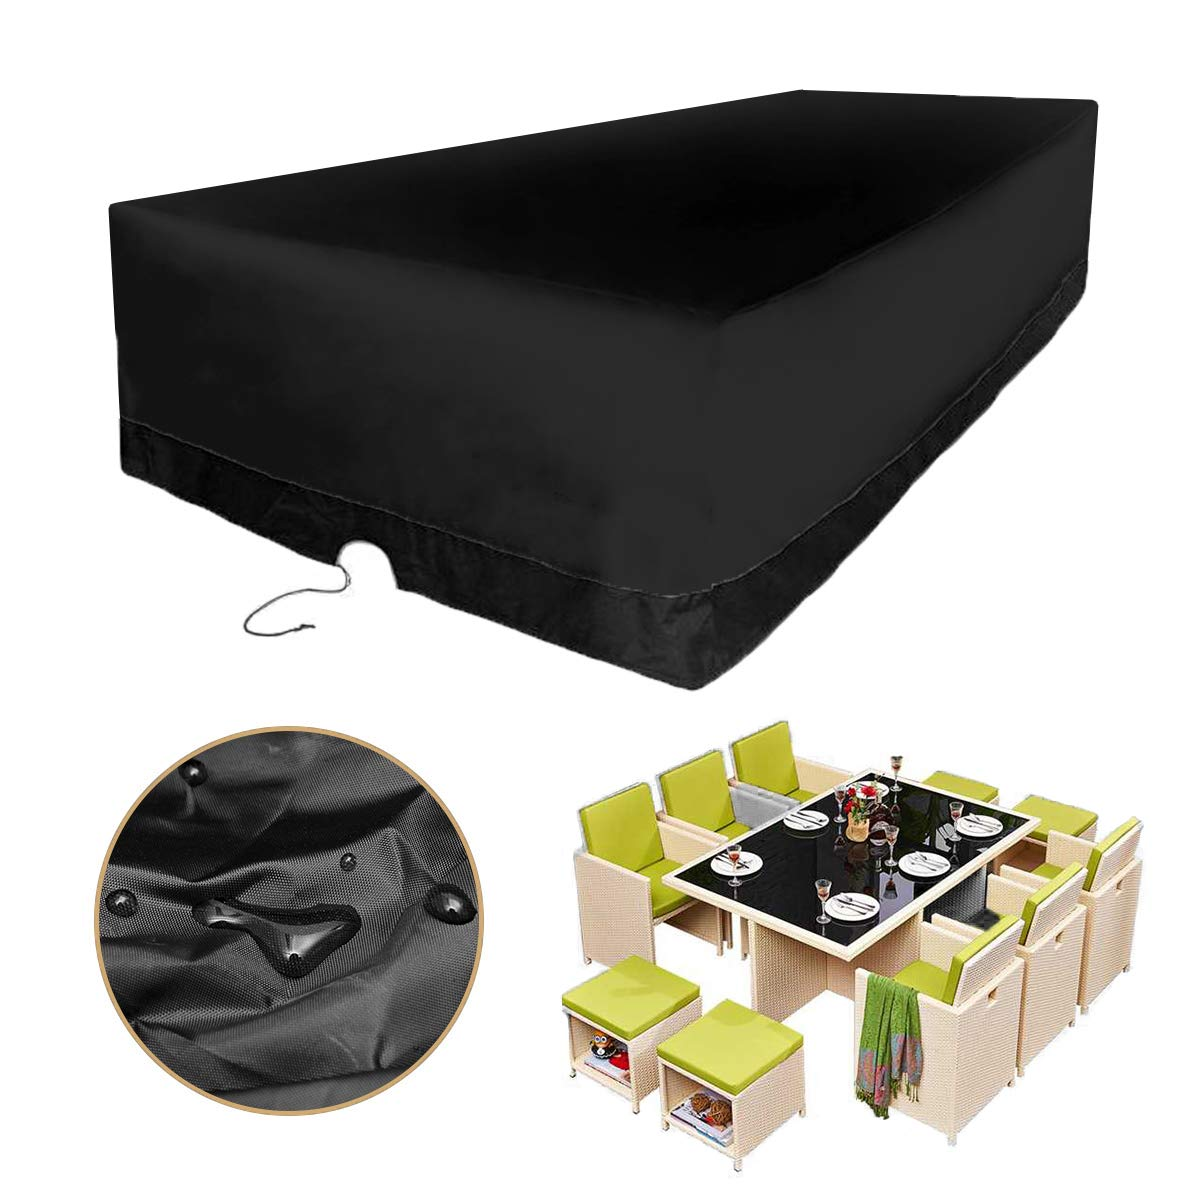 KING DO WAY Furniture Cover Built-in Tighten Rope 350x260x90cm Outdoor Patio Large Rectangular Cover Waterproof Dust UV Protection Fit 10 Seater Outdoor Furniture Set